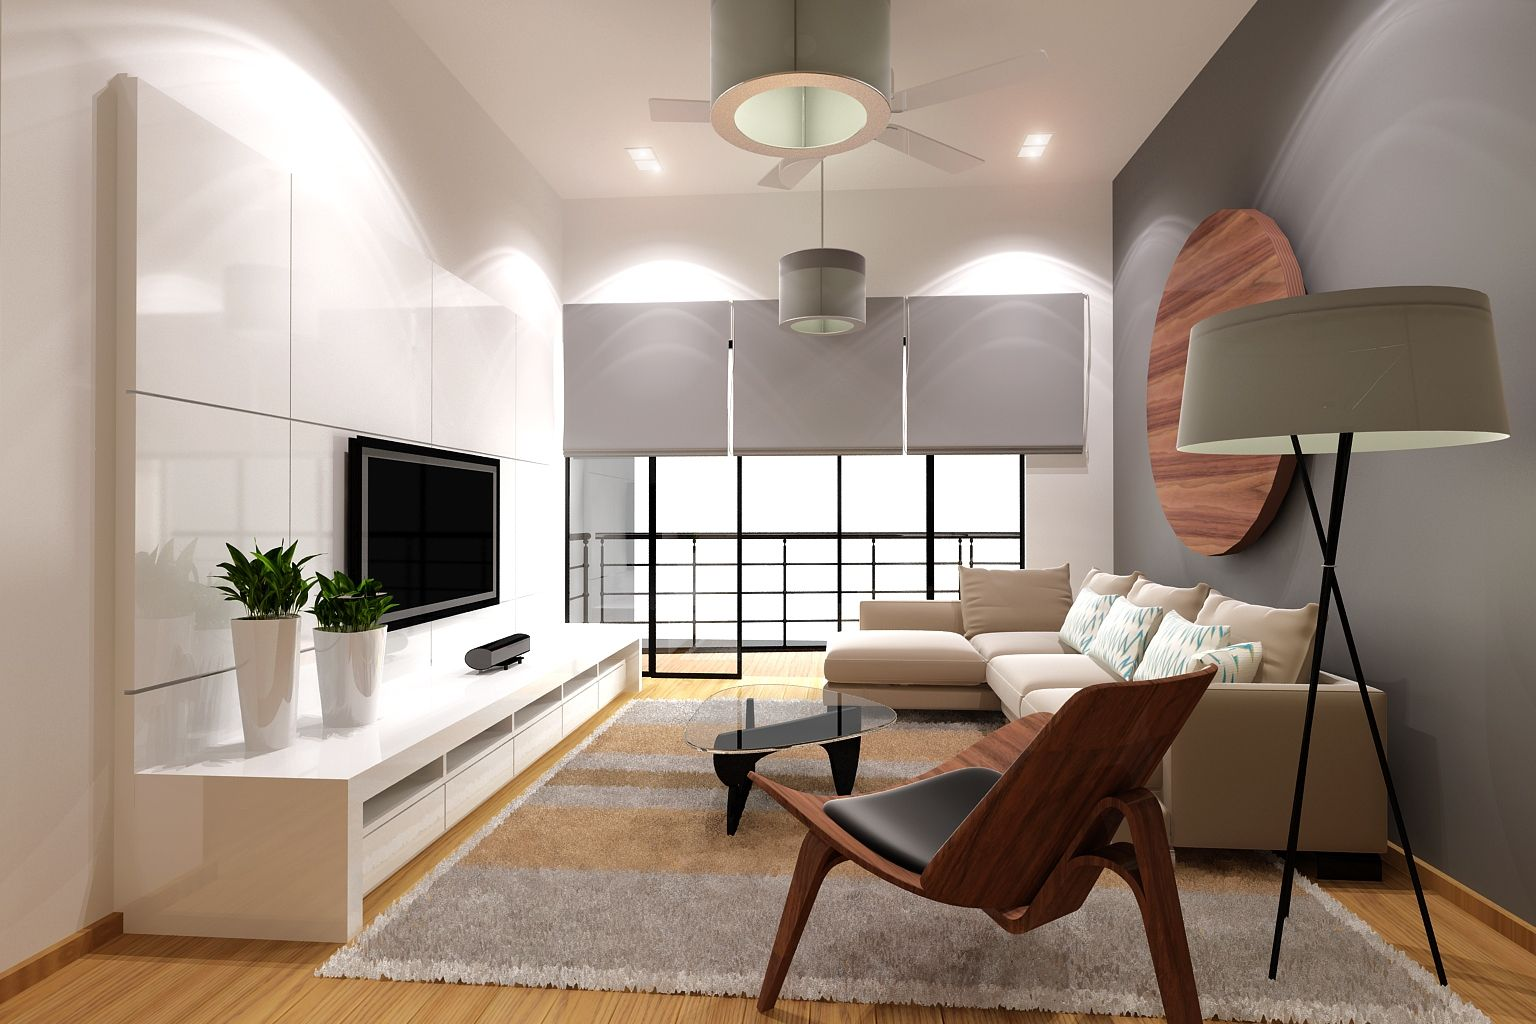 living room design ideas condo wwmq0xchk9 bajiceco within interior